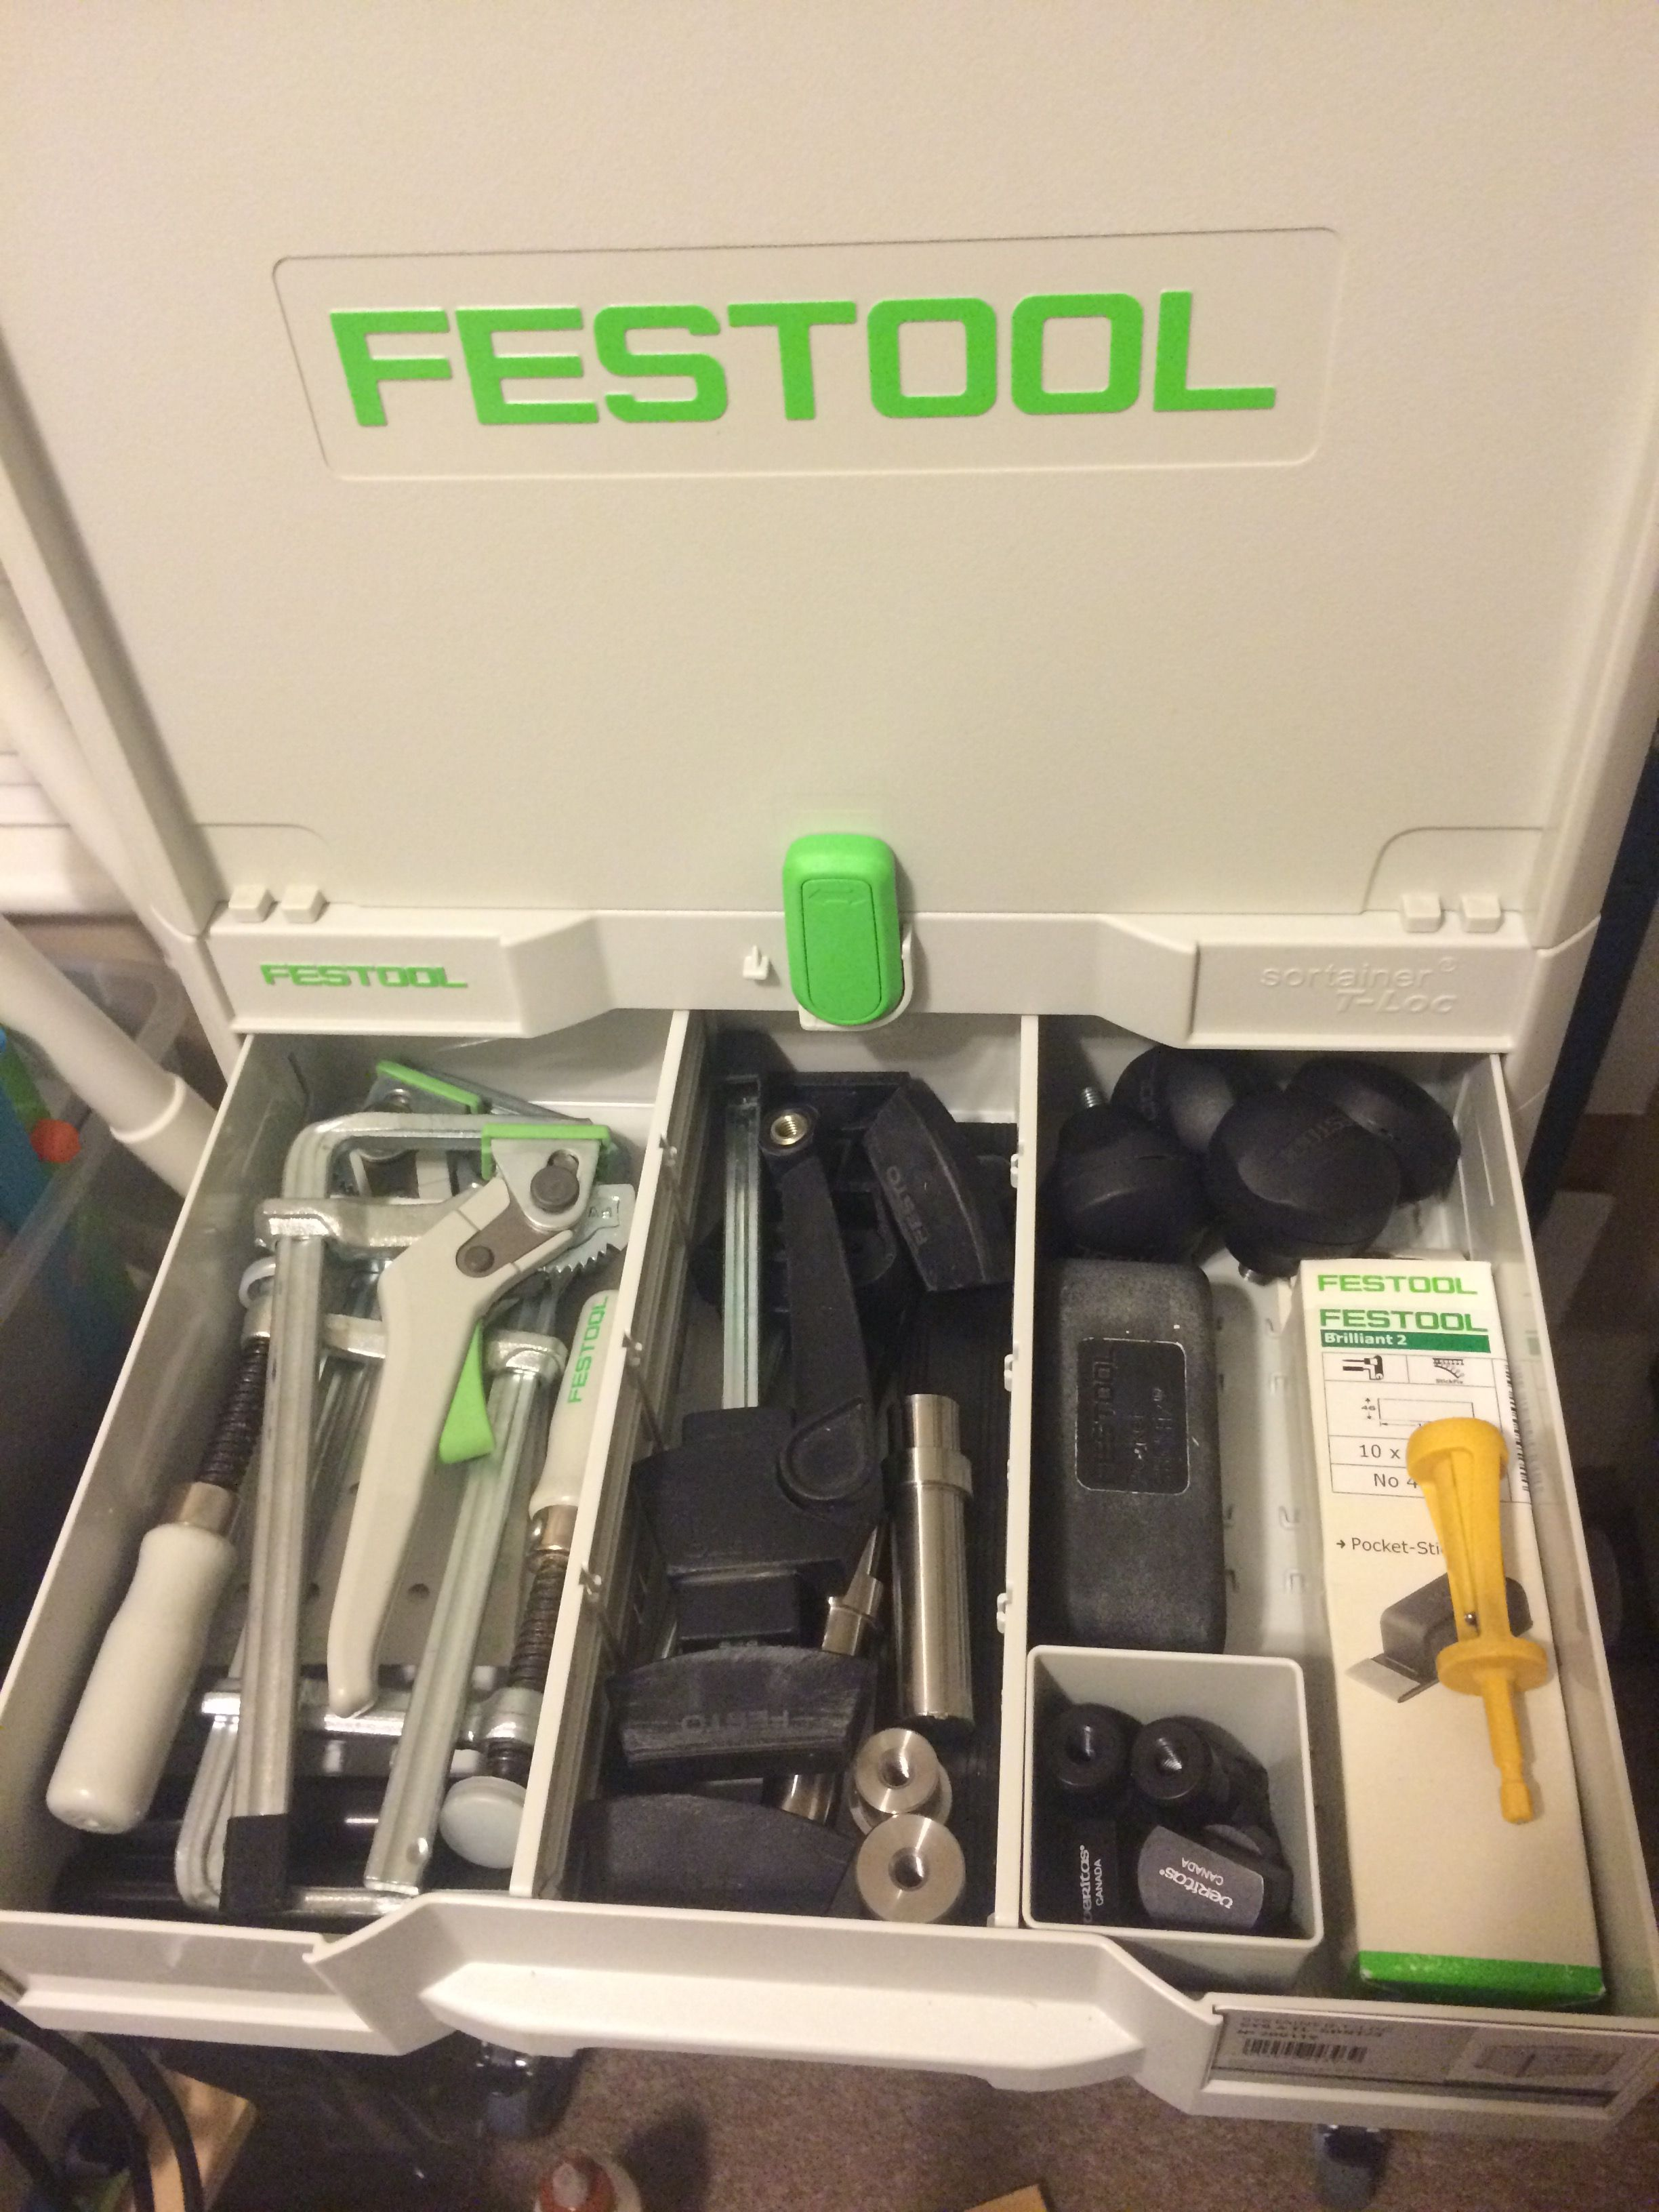 http://festoolownersgroup.com/festool-and-tanos-systainers/sys-4-tl-sort3-anyone-using-for-hand-tools/